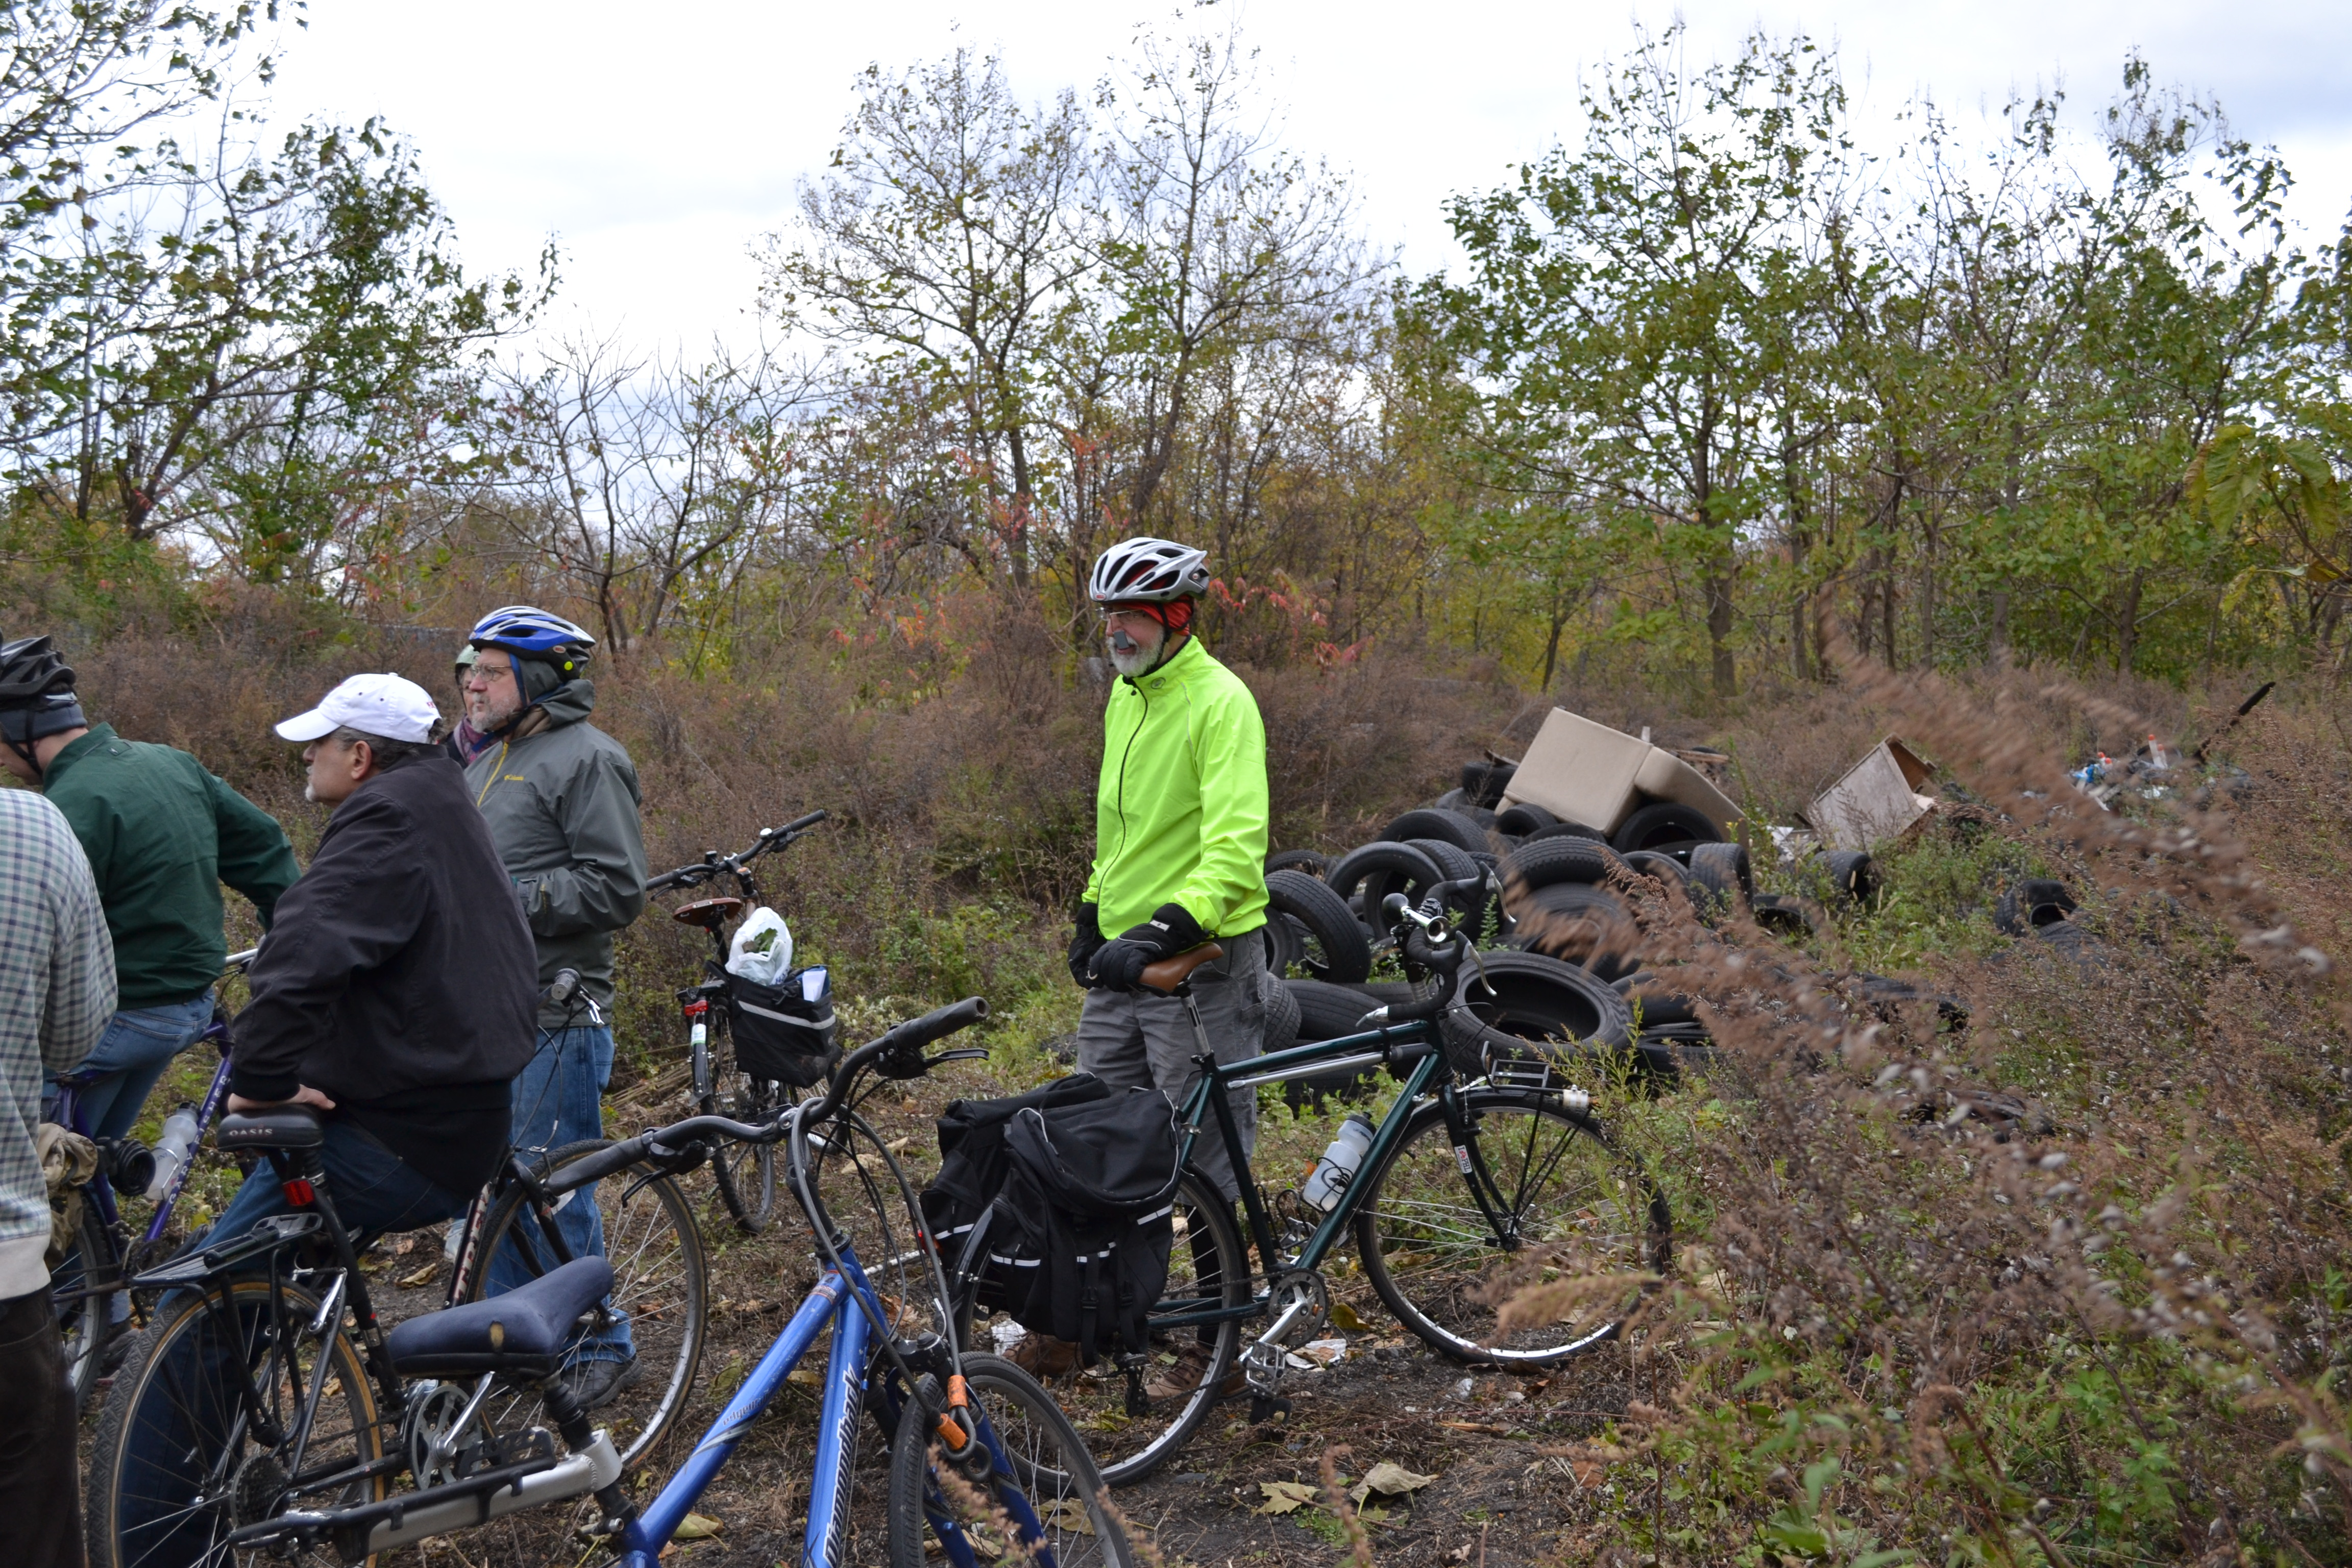 Much of the future Bartram's Mile is currently lined with trash or sites where people have dumped tires and debris